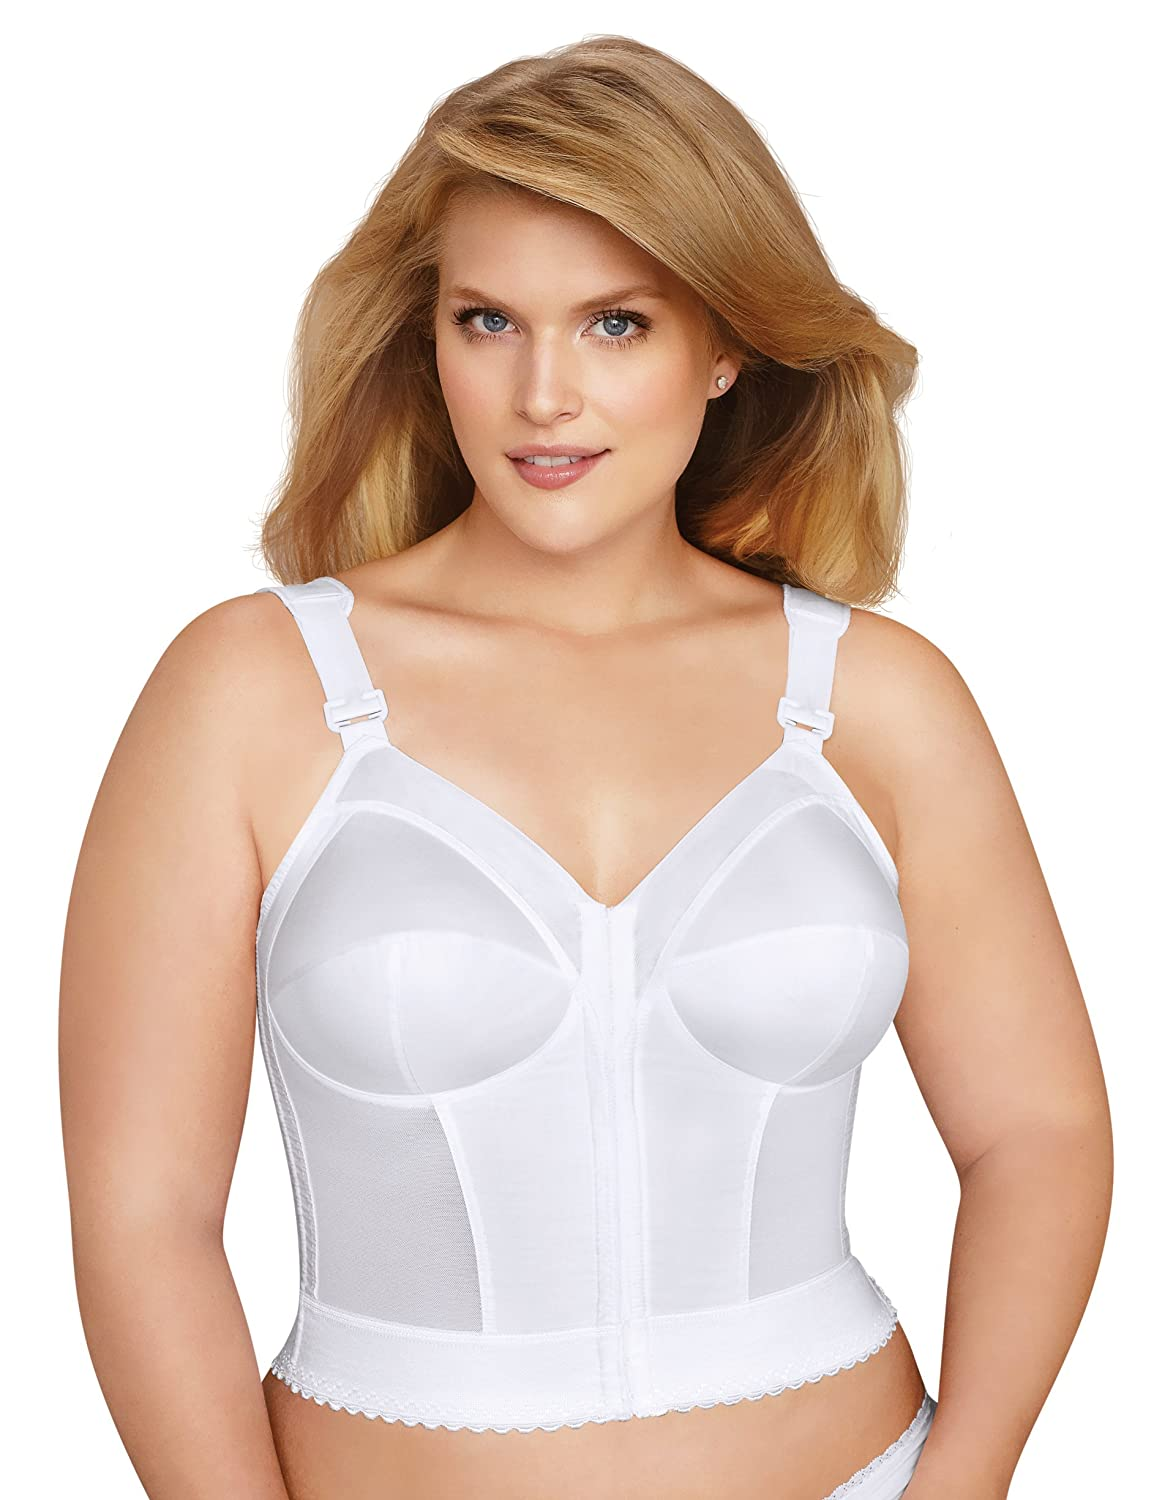 EXQUISITE FORM Women's Front Close Longline Bra #5107530 Exquiste Form Women' s IA 7507530